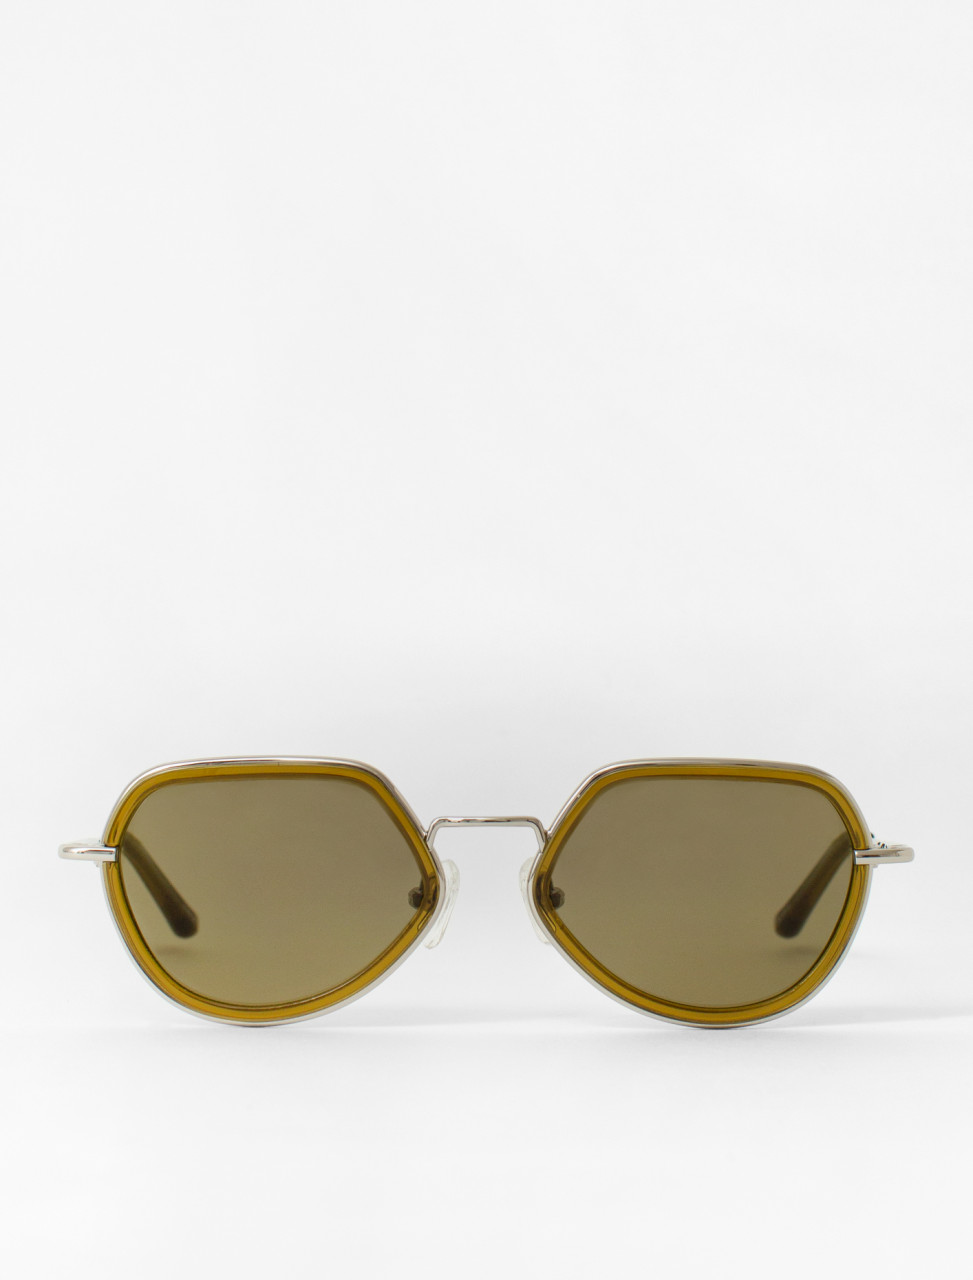 Steel Frame Sunglasses in Olive Green